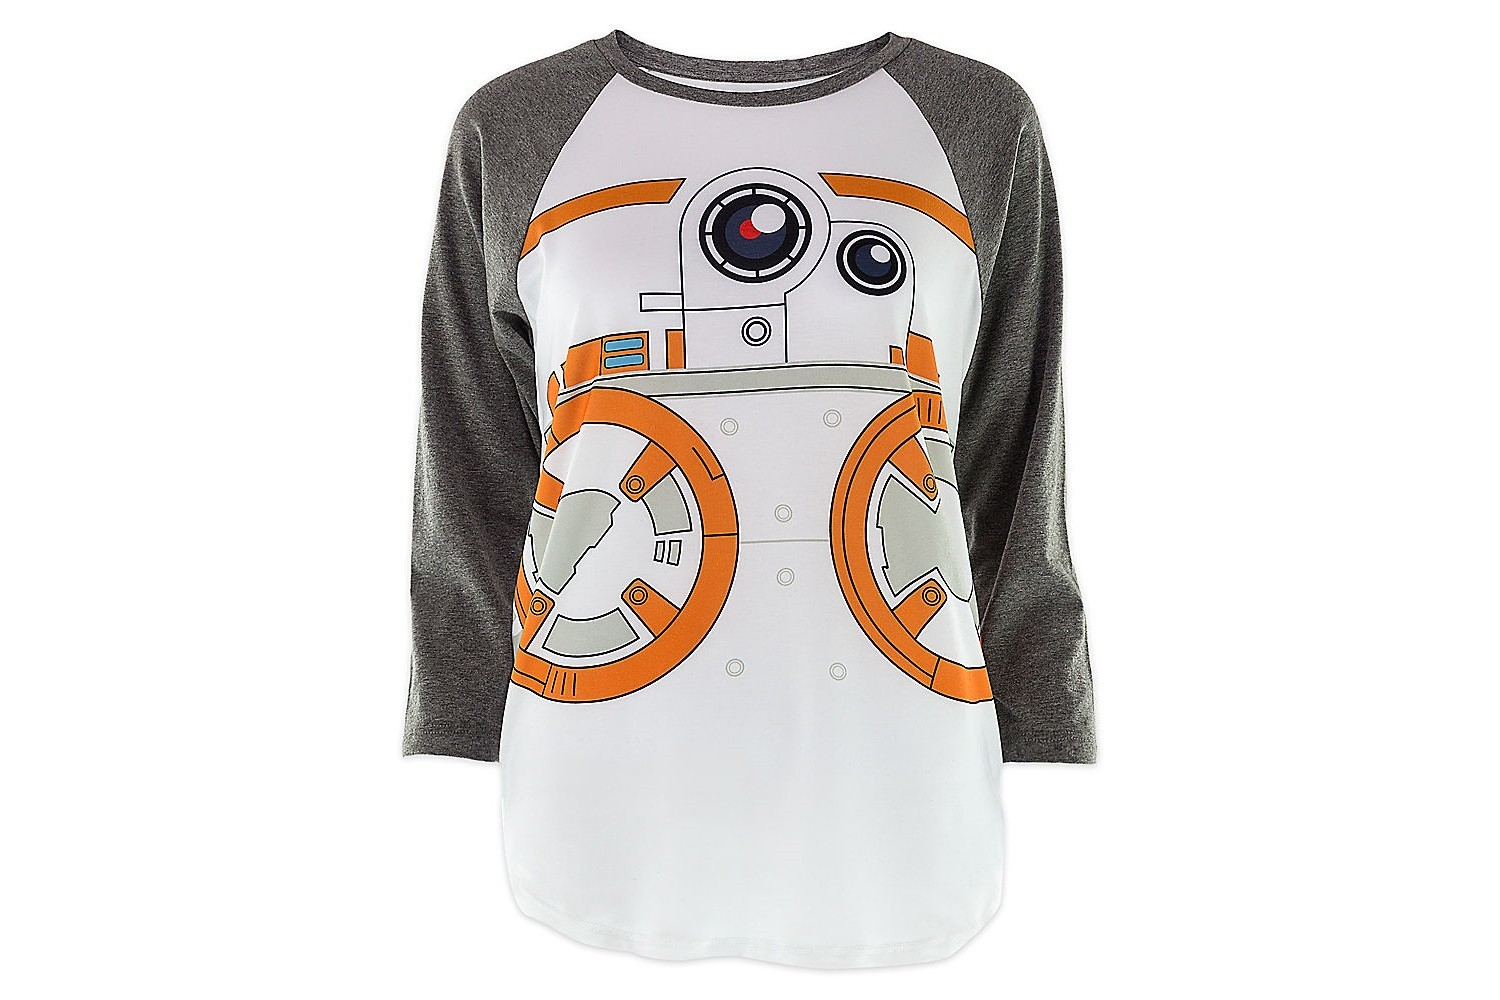 Women's BB-8 raglan tee at Disney Store